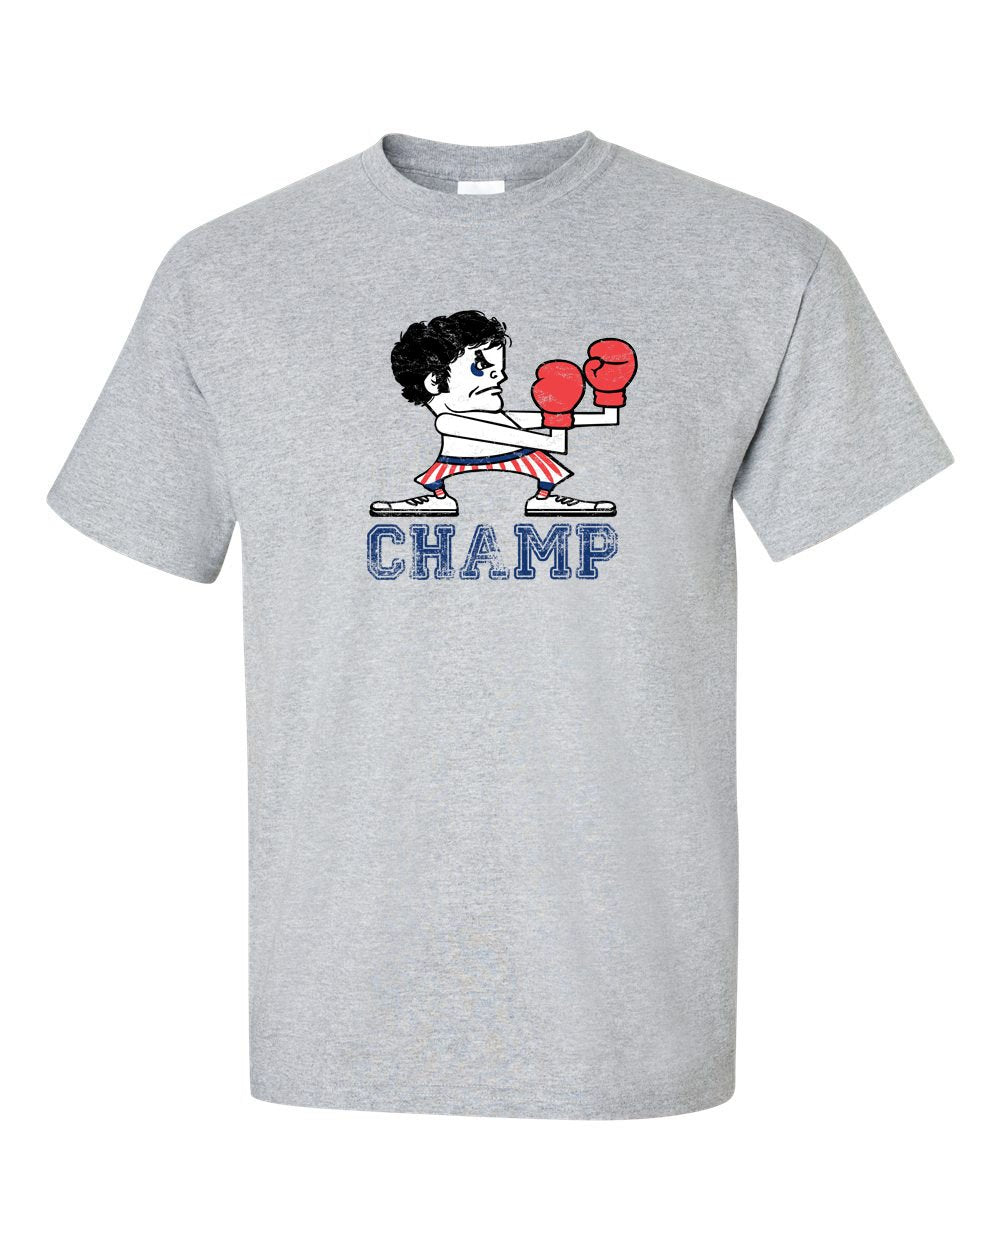 Champ Mens/Unisex T-Shirt